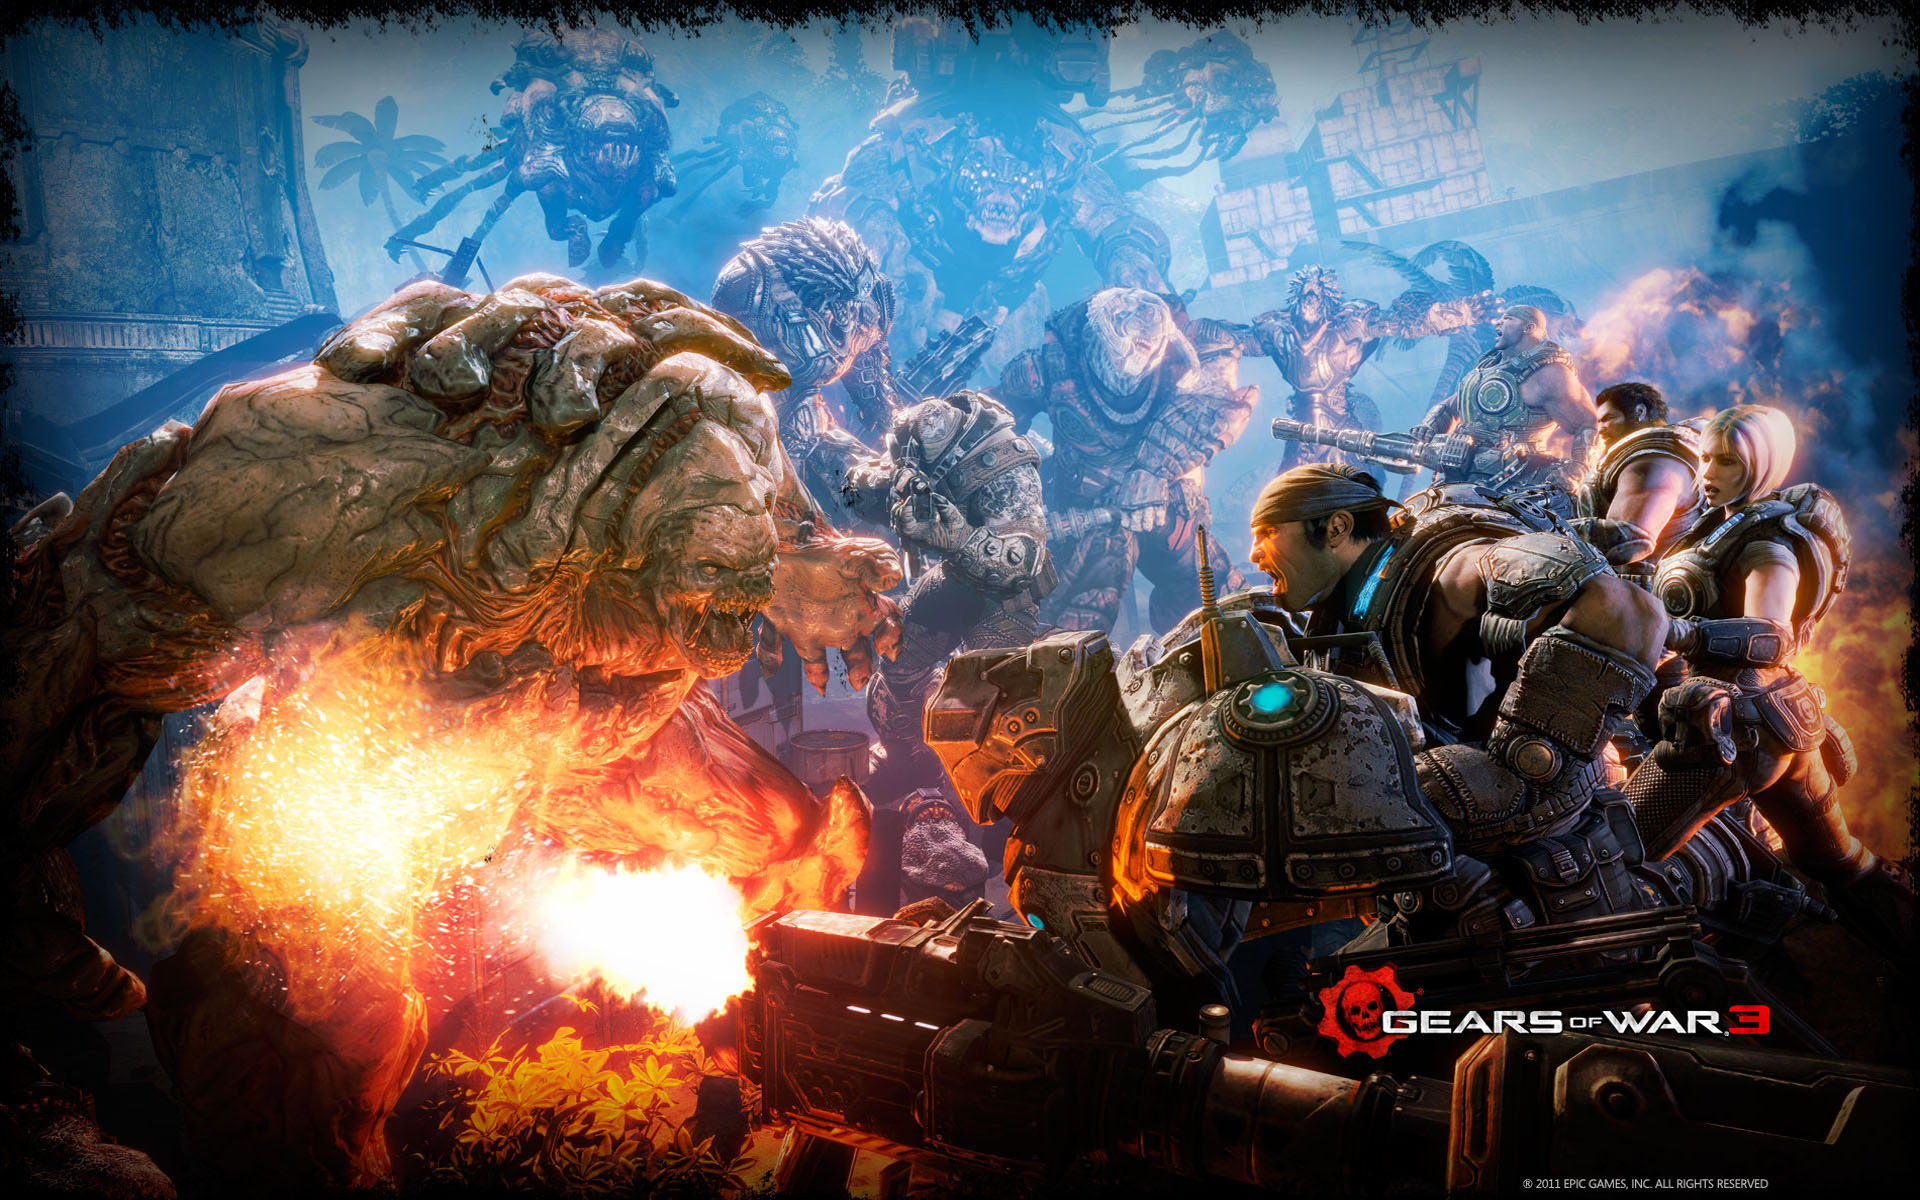 gears of war 3 wallpapers 1920x1200 hd wallpapers